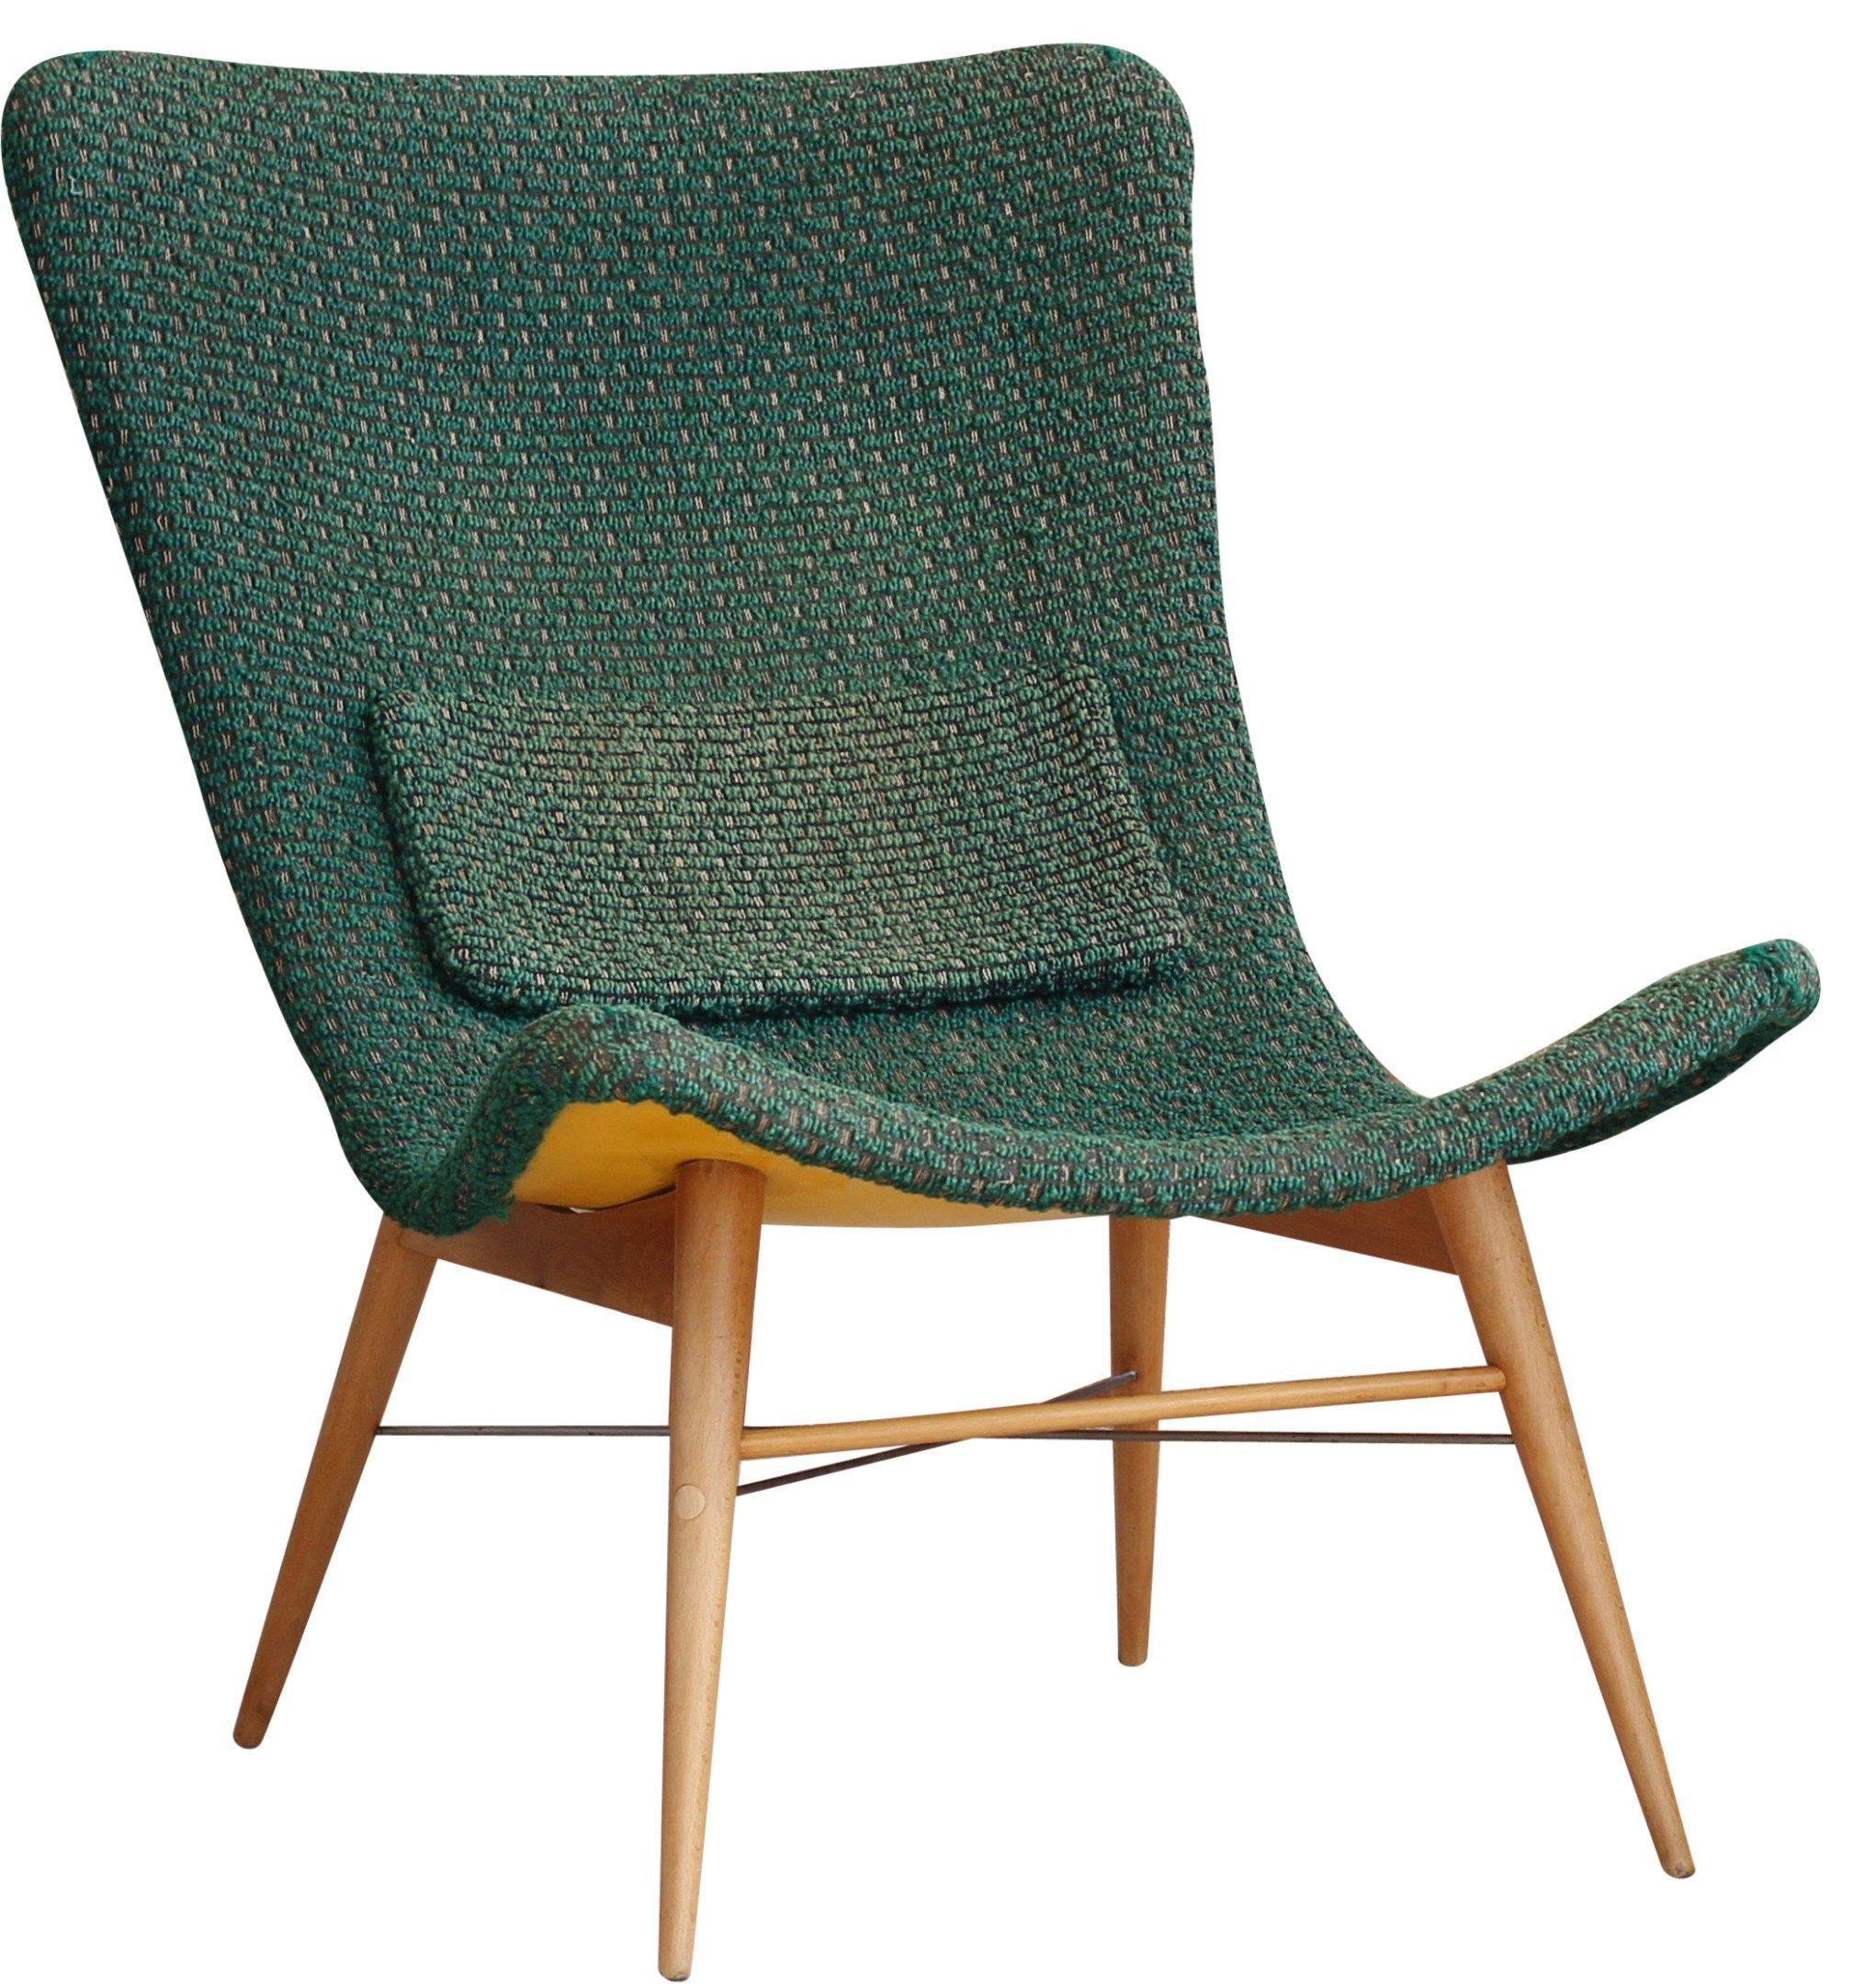 Armchair by M. Navratil, Czech Republic, 1960s